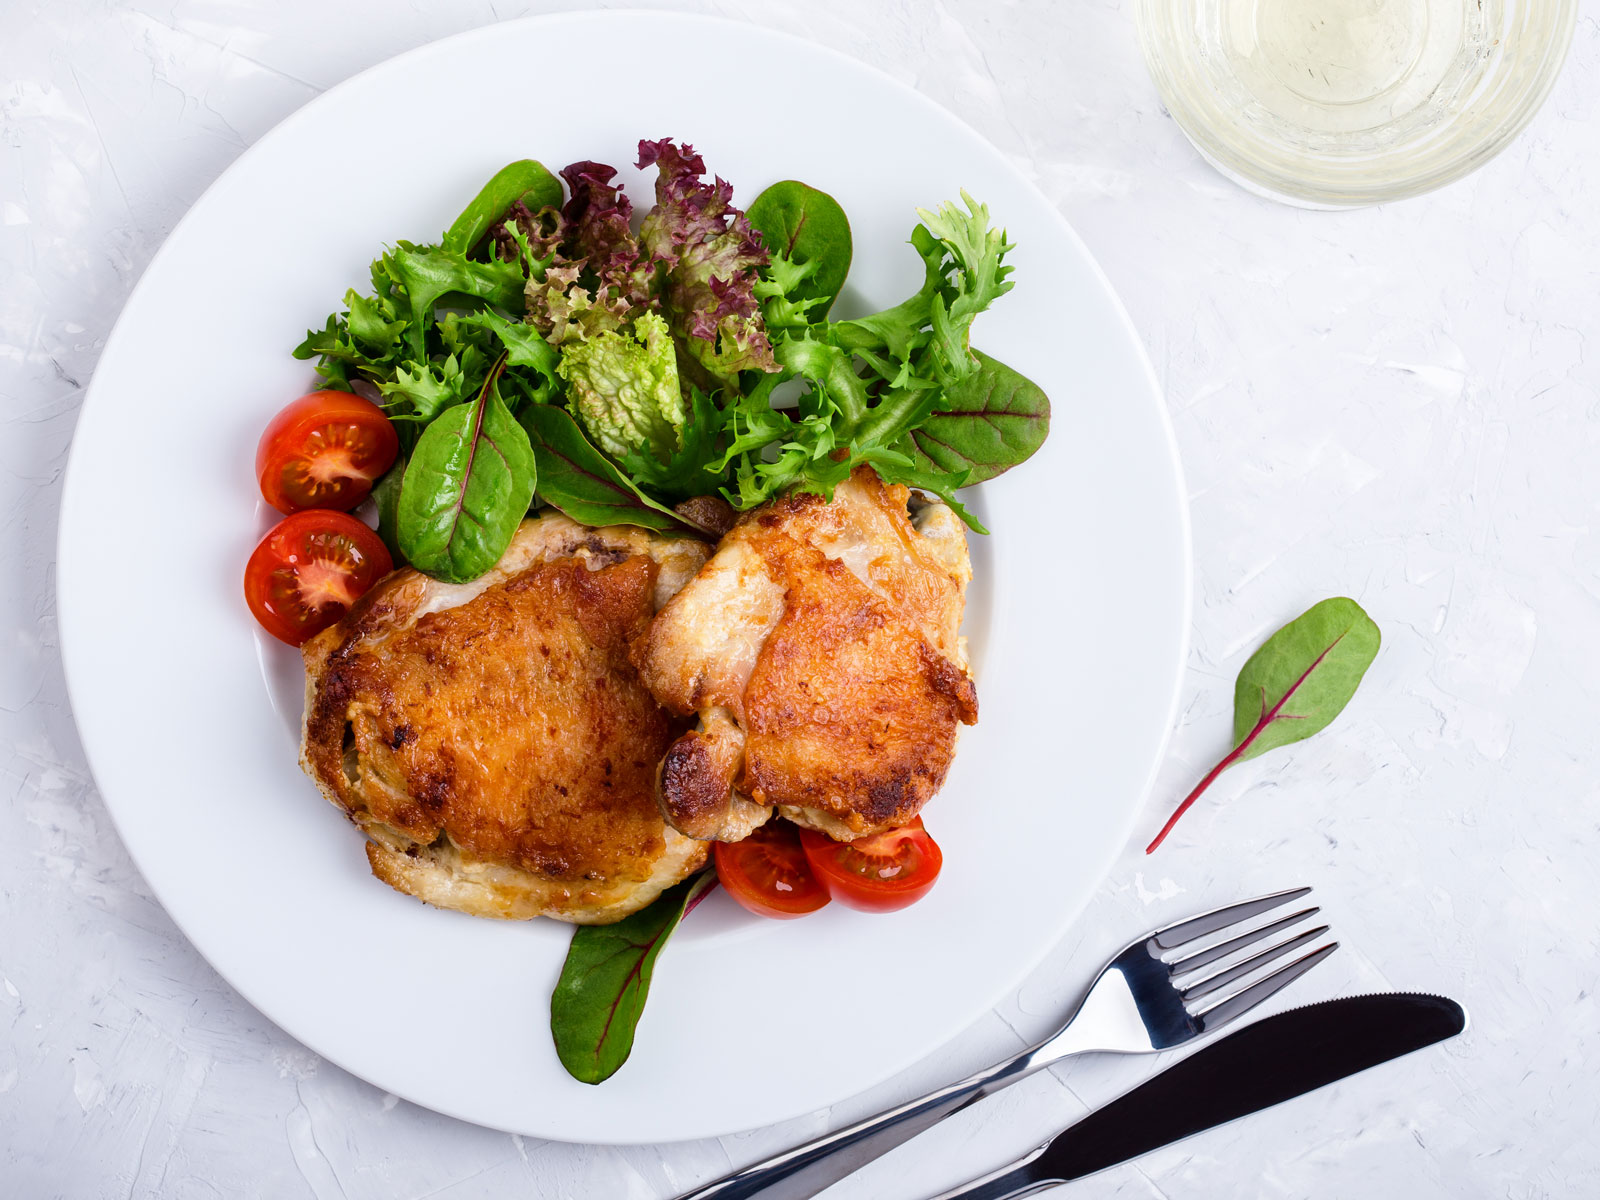 9 Mistakes to Avoid When Cooking Chicken, According to Chefs